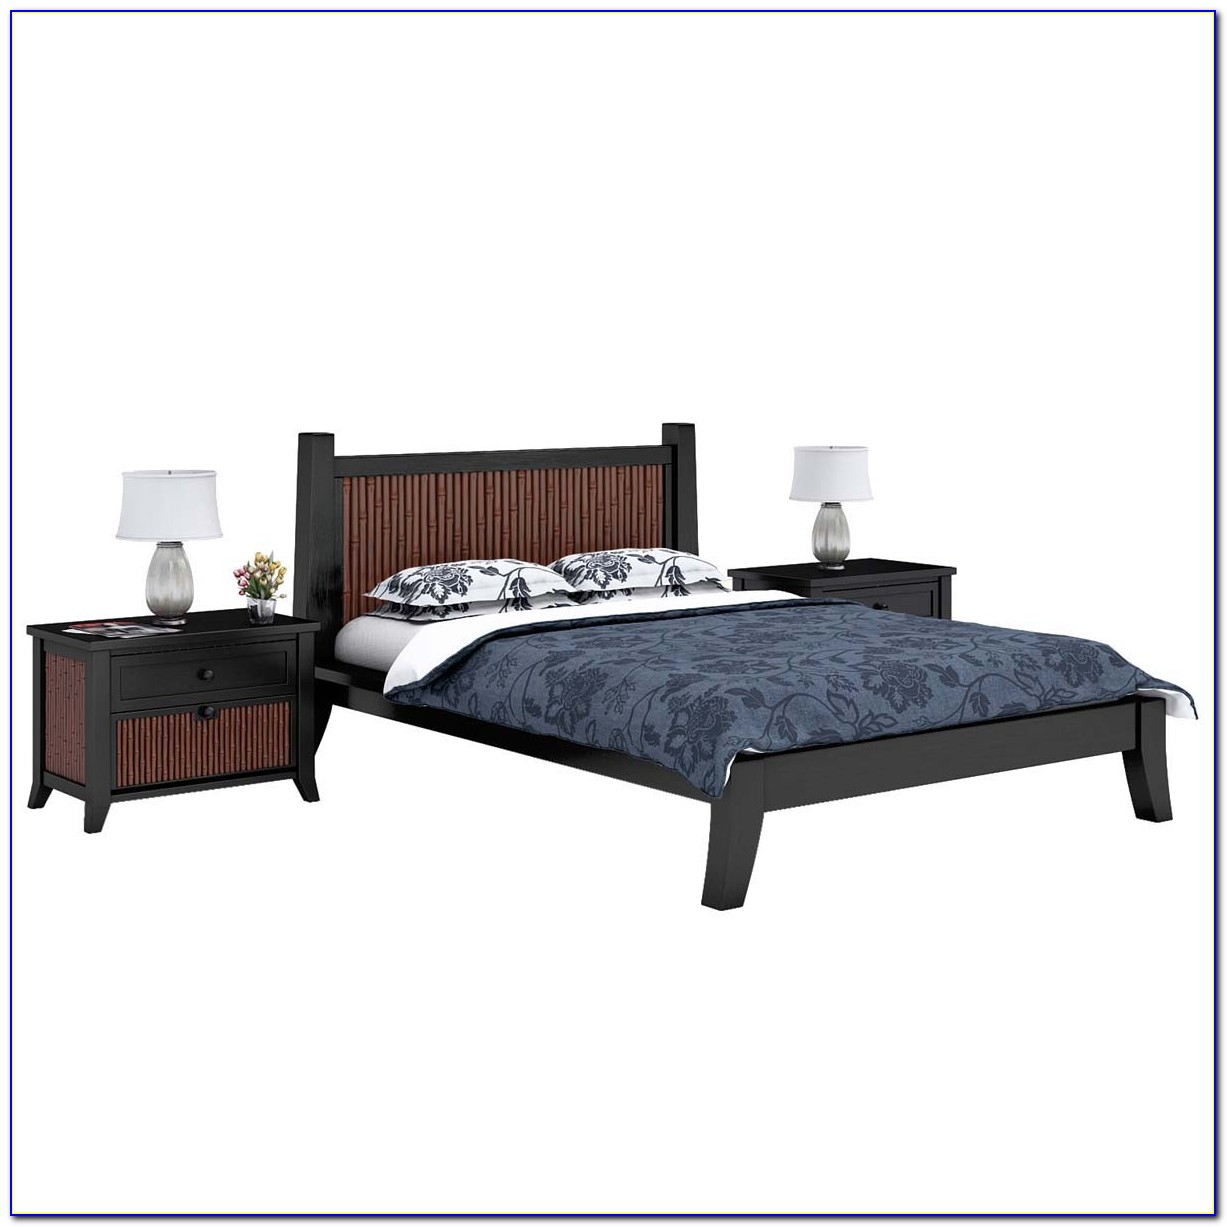 Solid Wood Headboards King Size Beds